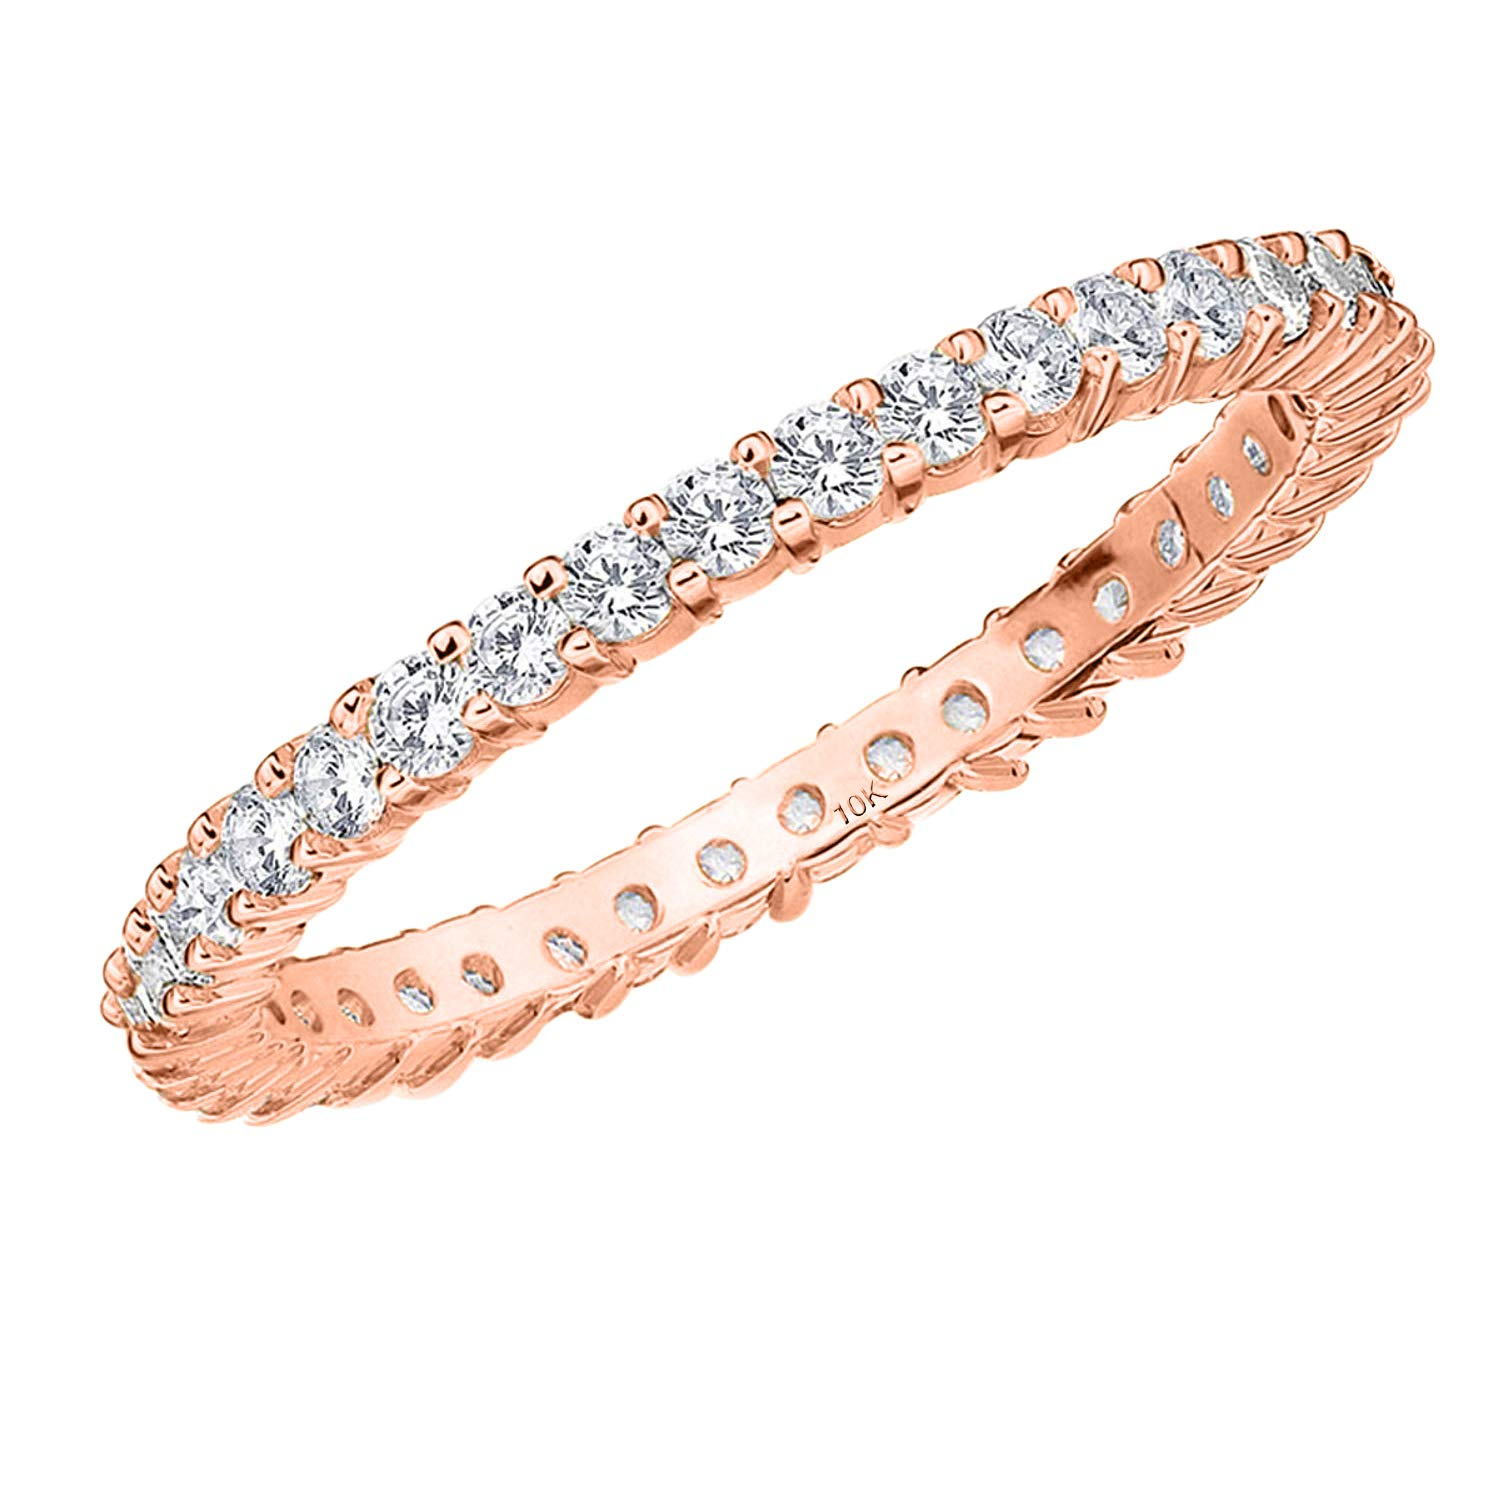 .50CT Passion Eternity Diamond Ring in 10K Rose Gold Shared Prong Setting - Finger Size 8